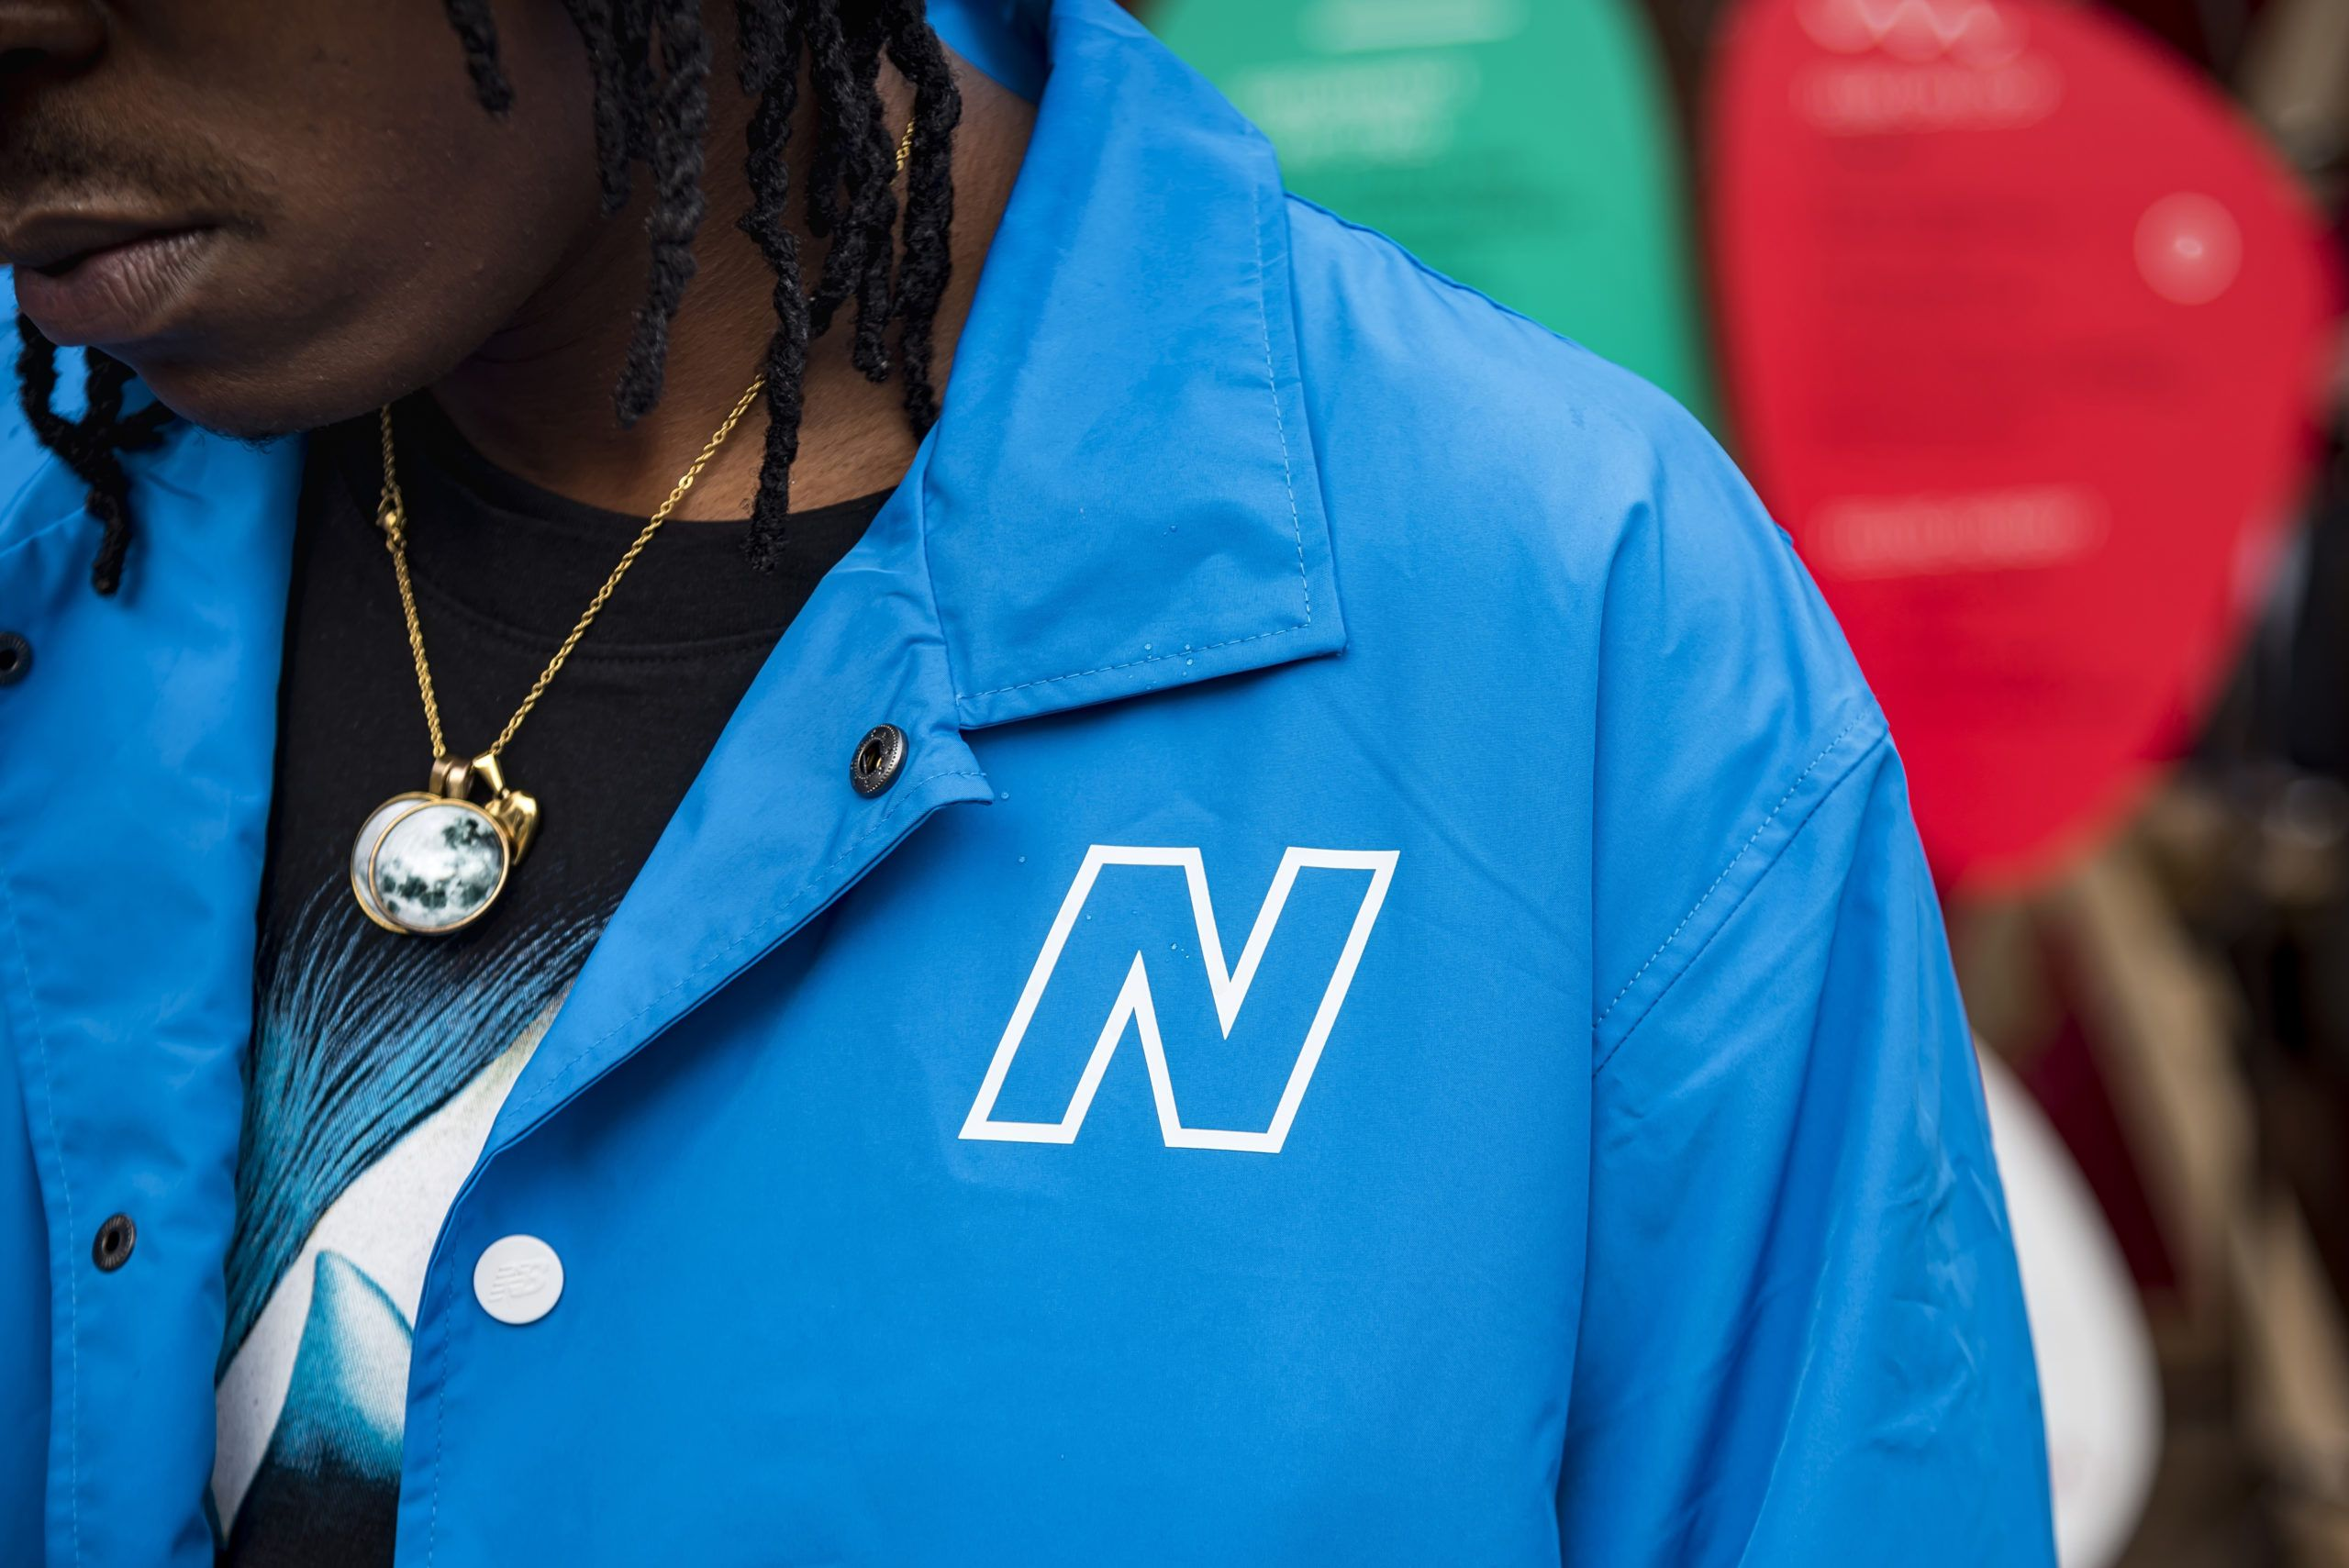 EVENT RECAP : HUNTING FOR KICKS X NEW BALANCE BEST OUTFITS AT UMI FEST